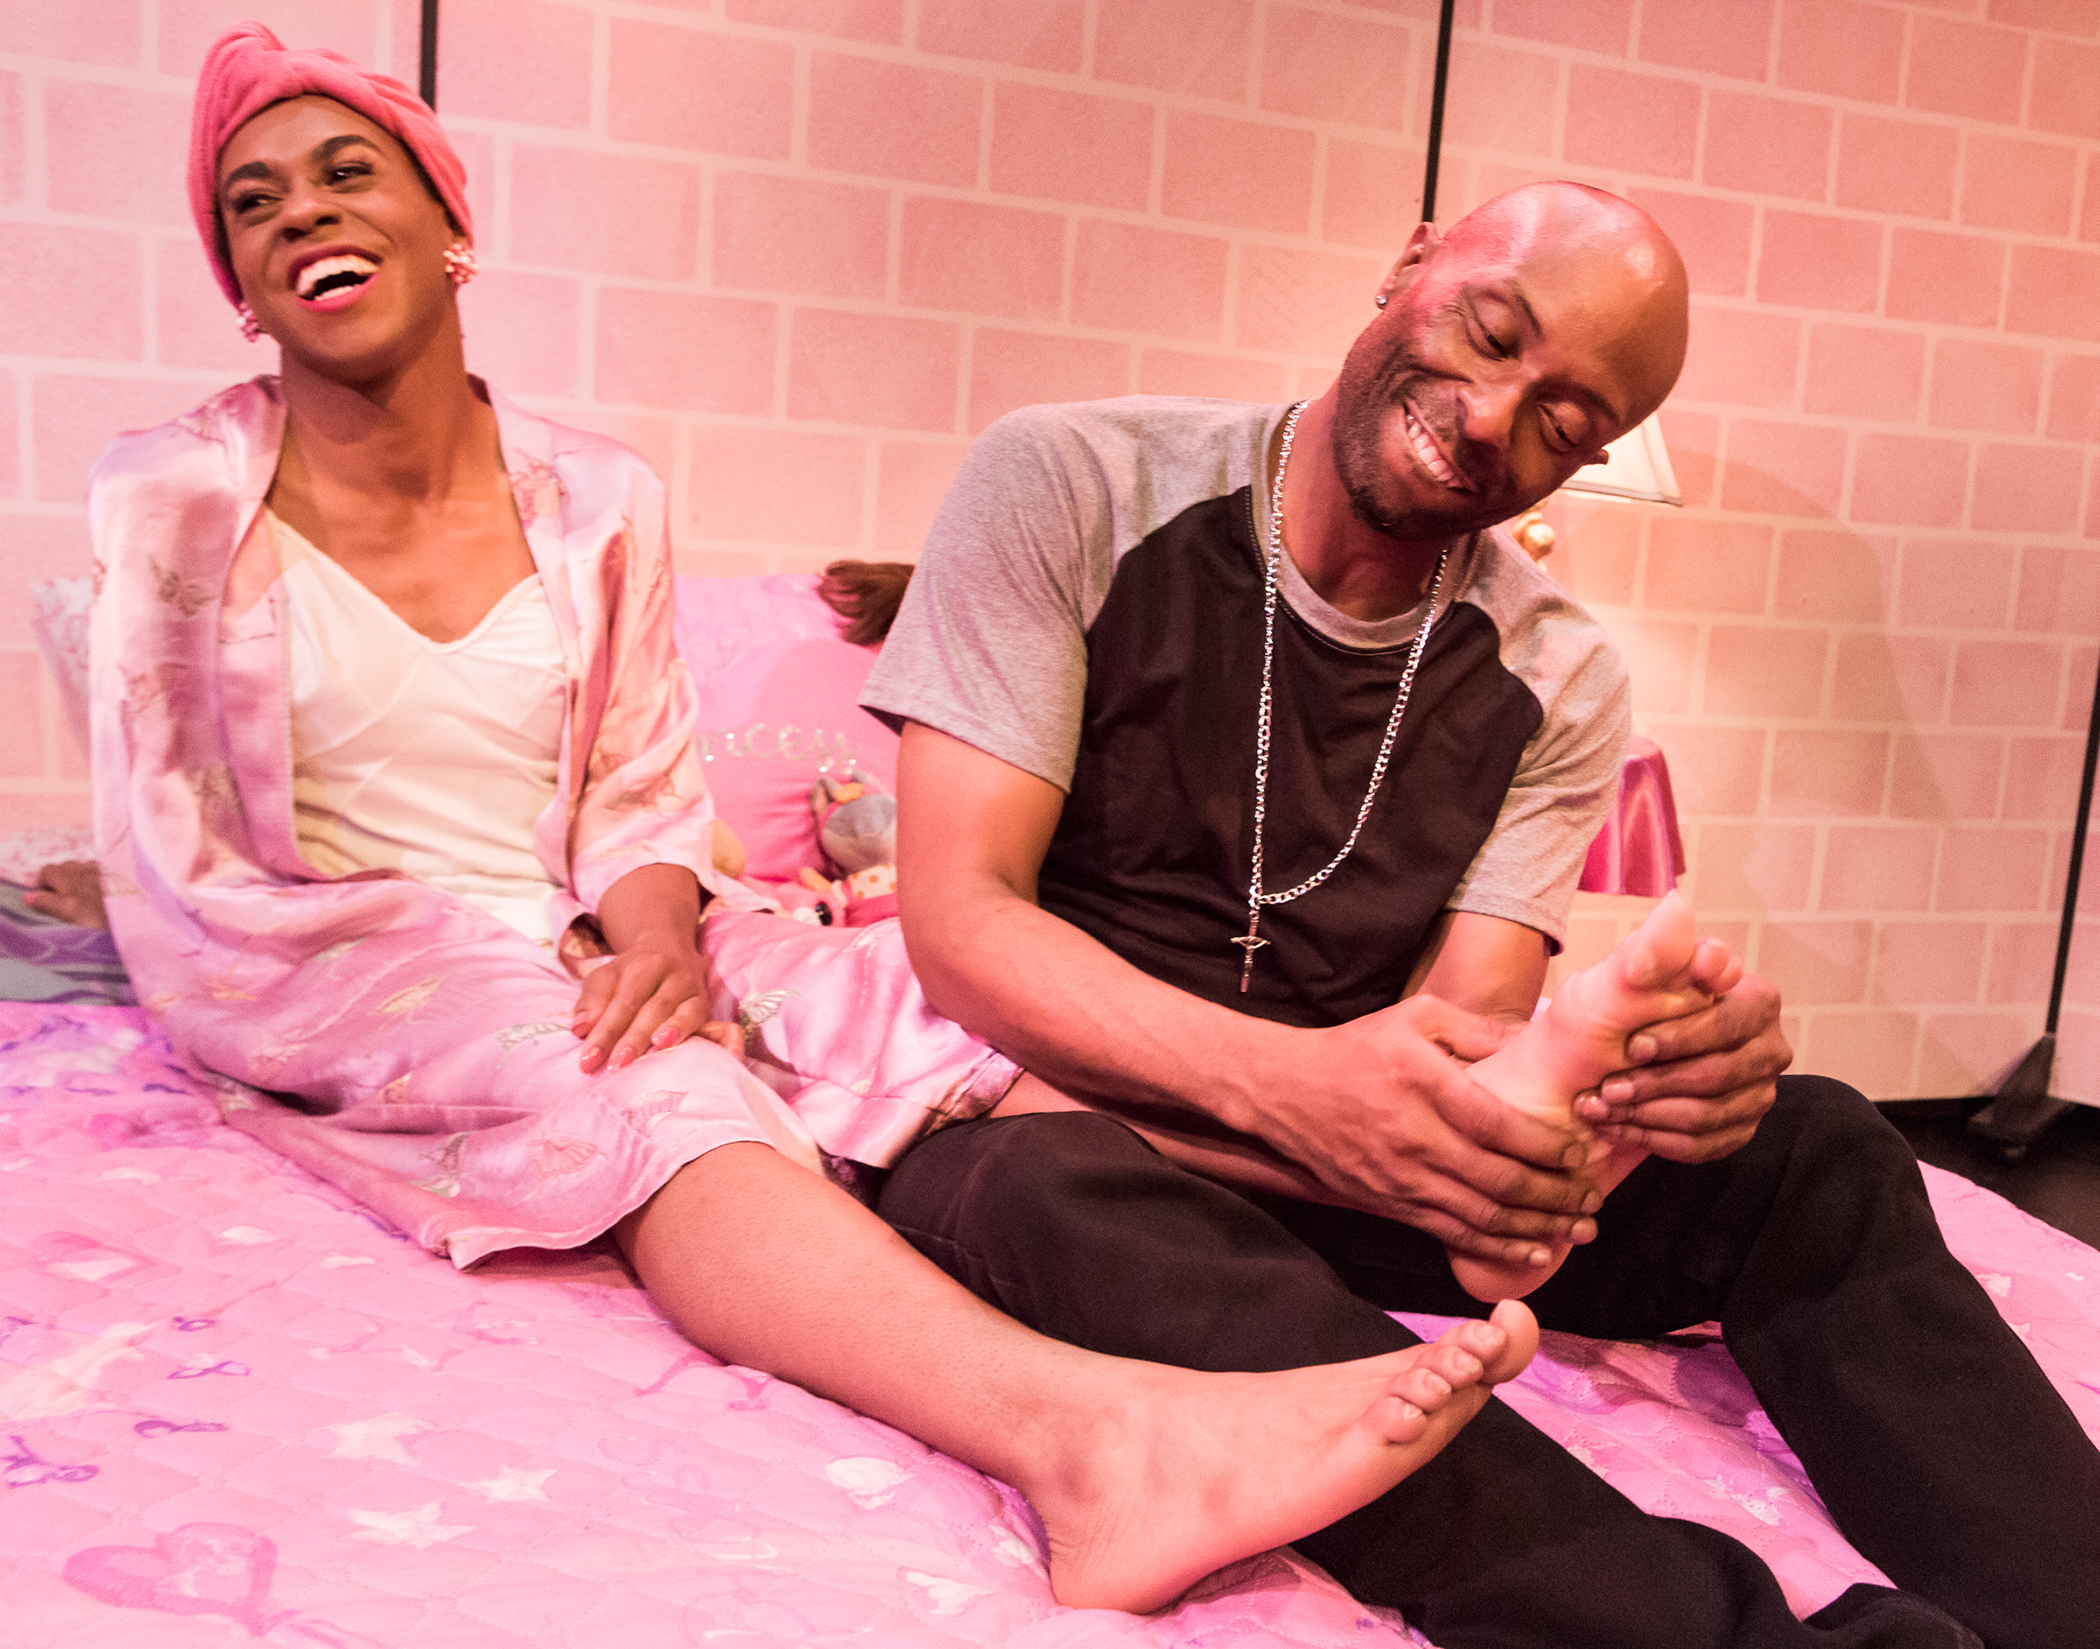 Pictured left to right: Charles Peoples III as Pink and R. Shawntez Jackson as Ace in THE LEGEND OF PINK by Kheven LaGrone, directed by AeJay Mitchell; A Theatre Rhinoceros Production at The Gateway Theatre (formerly The Eureka Theatre.)